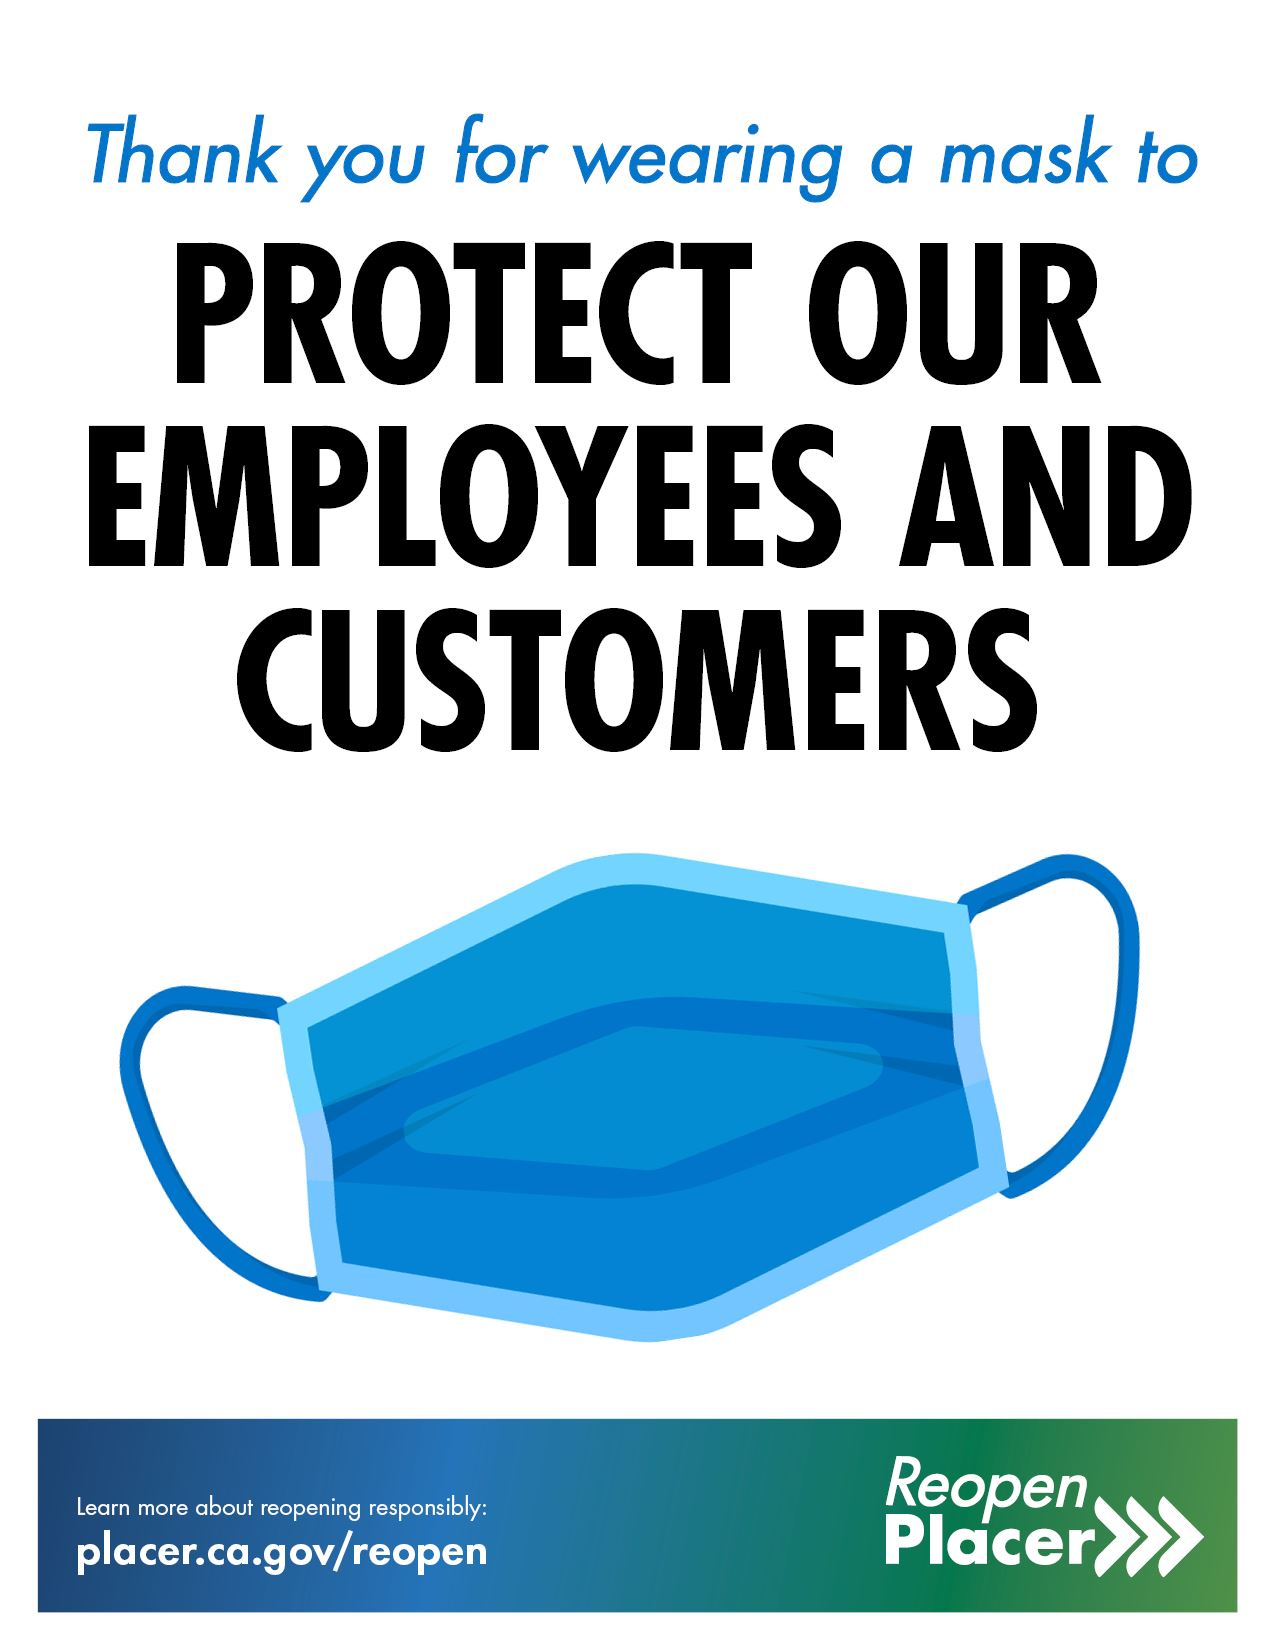 RP Poster- Protect employees and customers Opens in new window